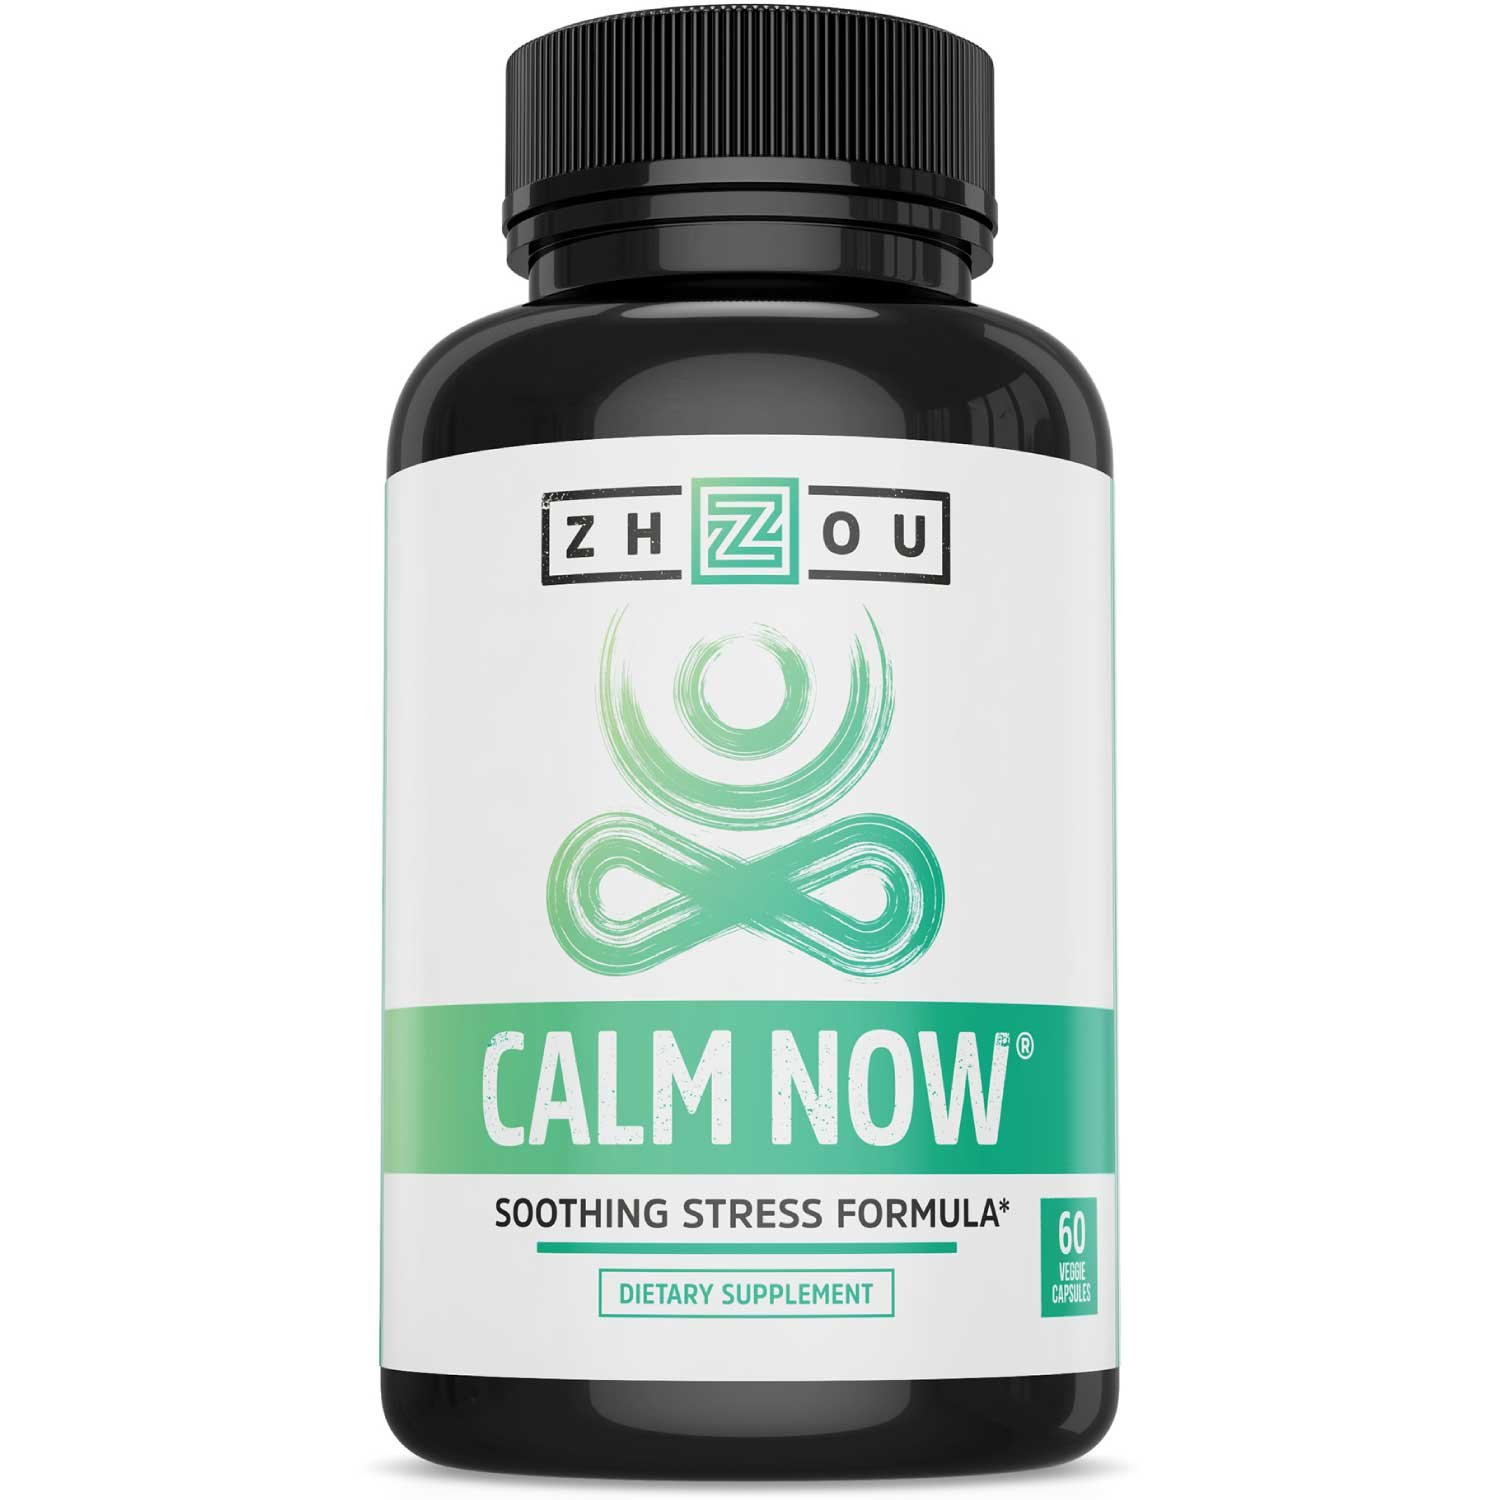 CALM NOW Soothing Stress Support Supplement, Herbal Blend Crafted To Keep Busy Minds Relaxed, Focused & Positive; Supports Serotonin Increase; Ashwagandha, Rhodiola Rosea, B Vitamins, Bacopa & More